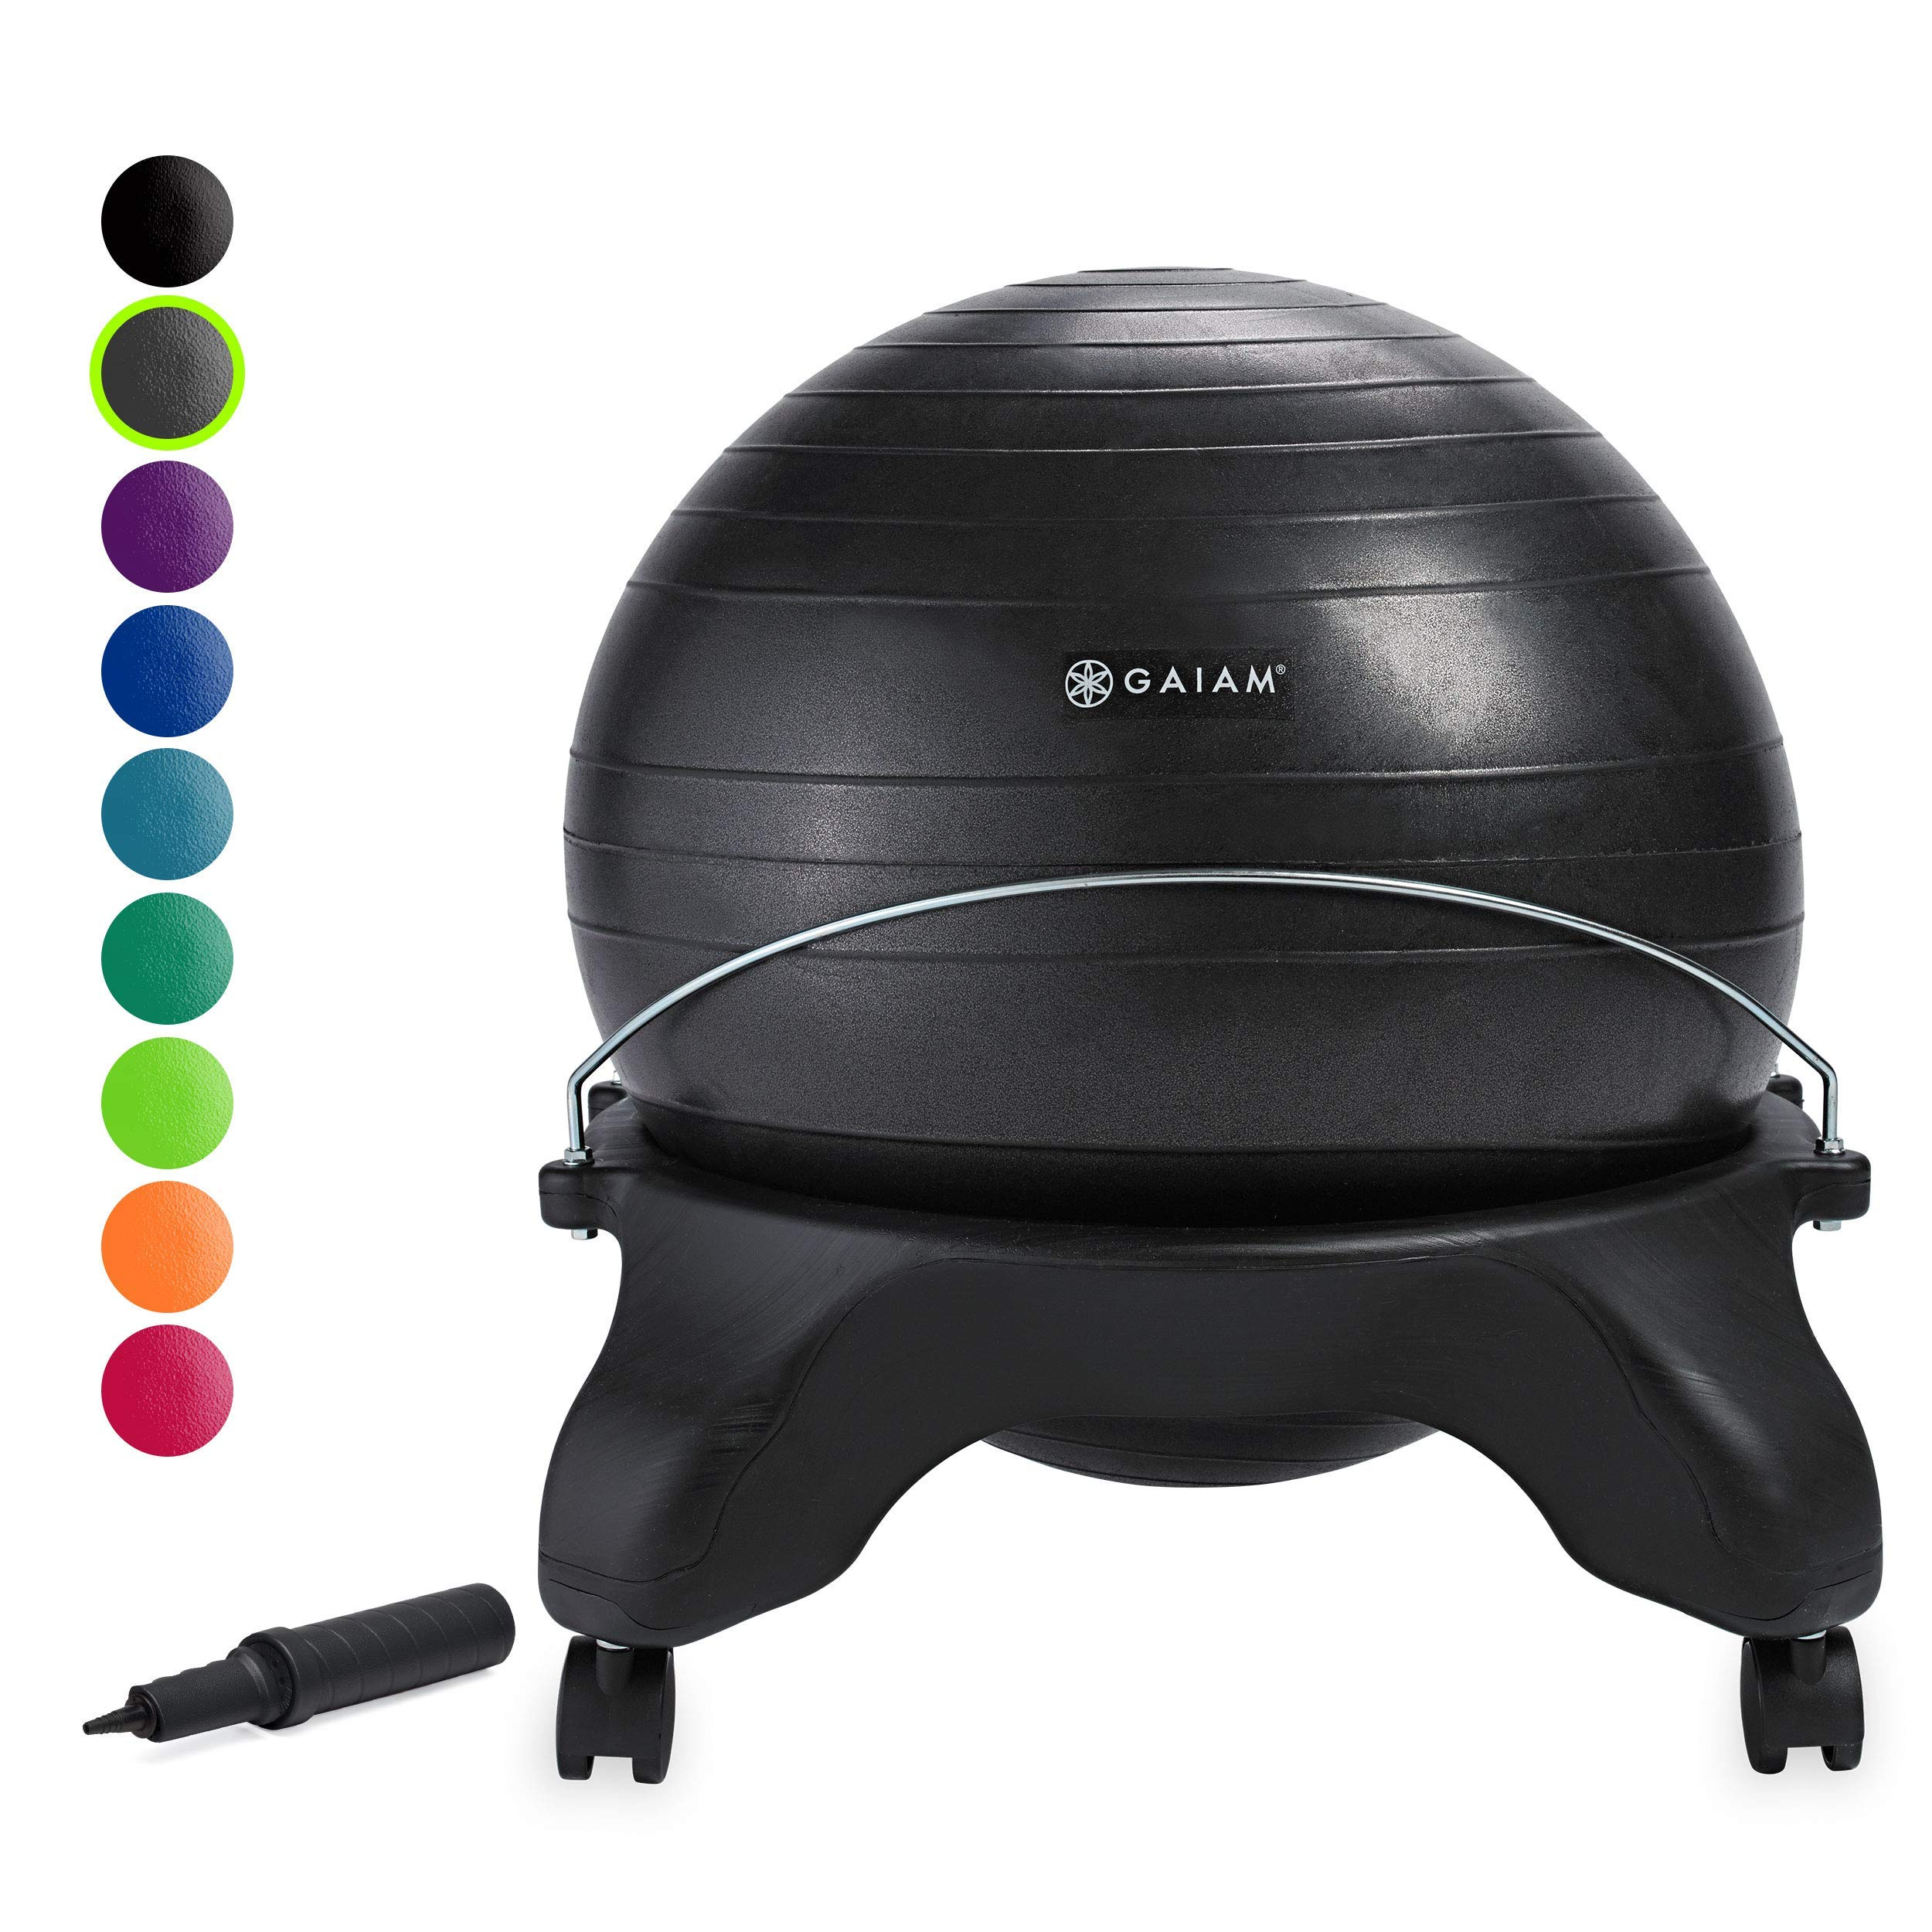 Gaiam Classic Backless Balance Ball Chair - Exercise Stability Yoga Ball Premium Ergonomic Chair for Home and Office Desk with Air Pump, Exercise Guide and Satisfaction Guarantee, Charcoal (Renewed)